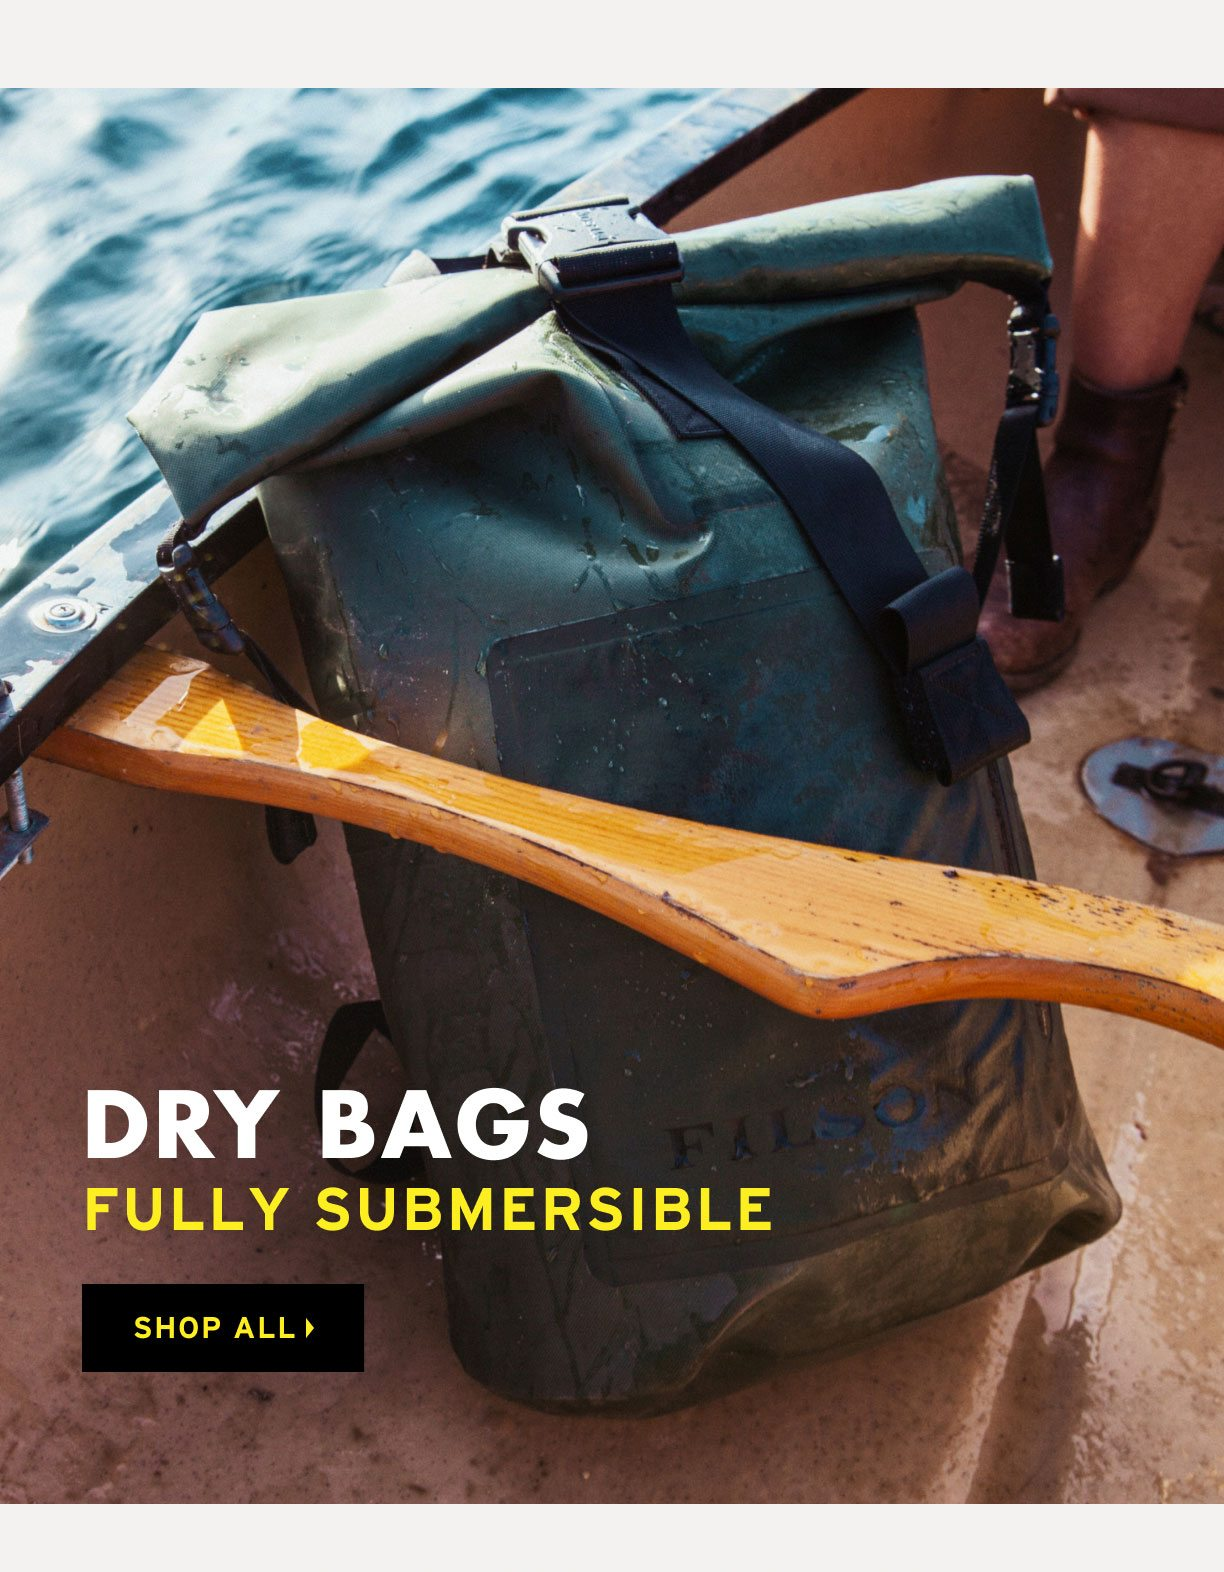 SHOP DRY BAGS